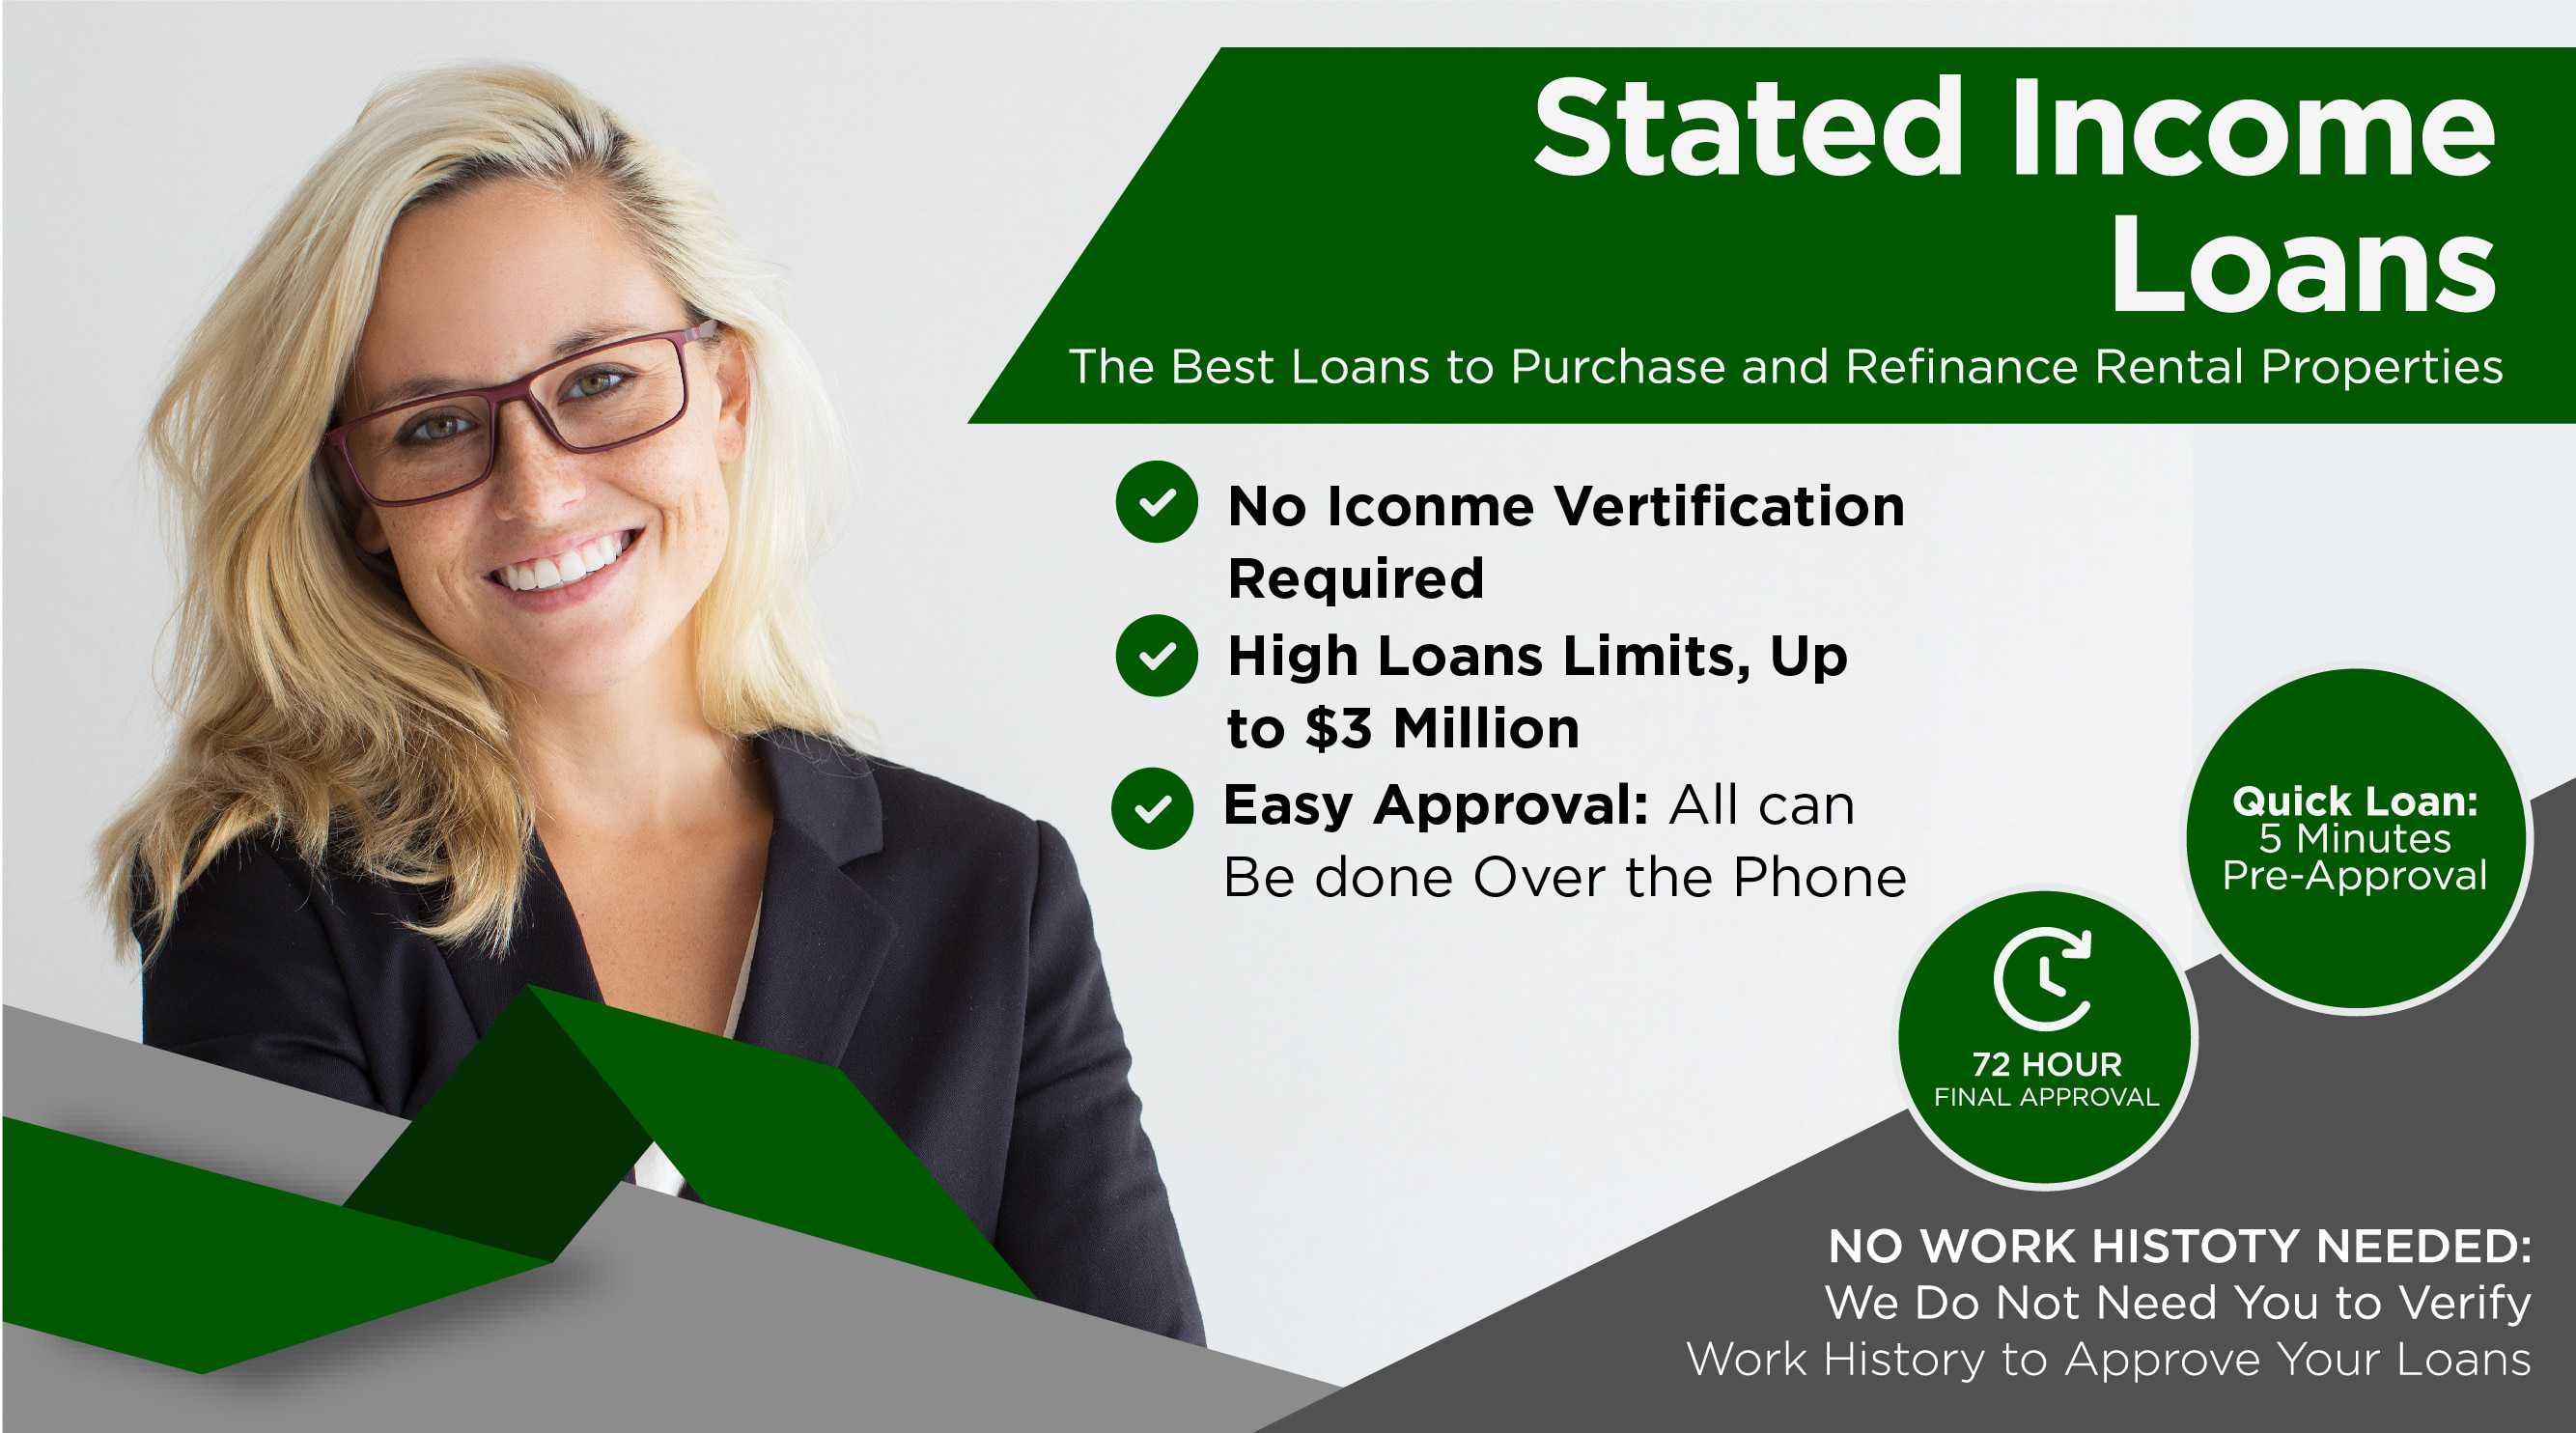 stated income loans no income verification